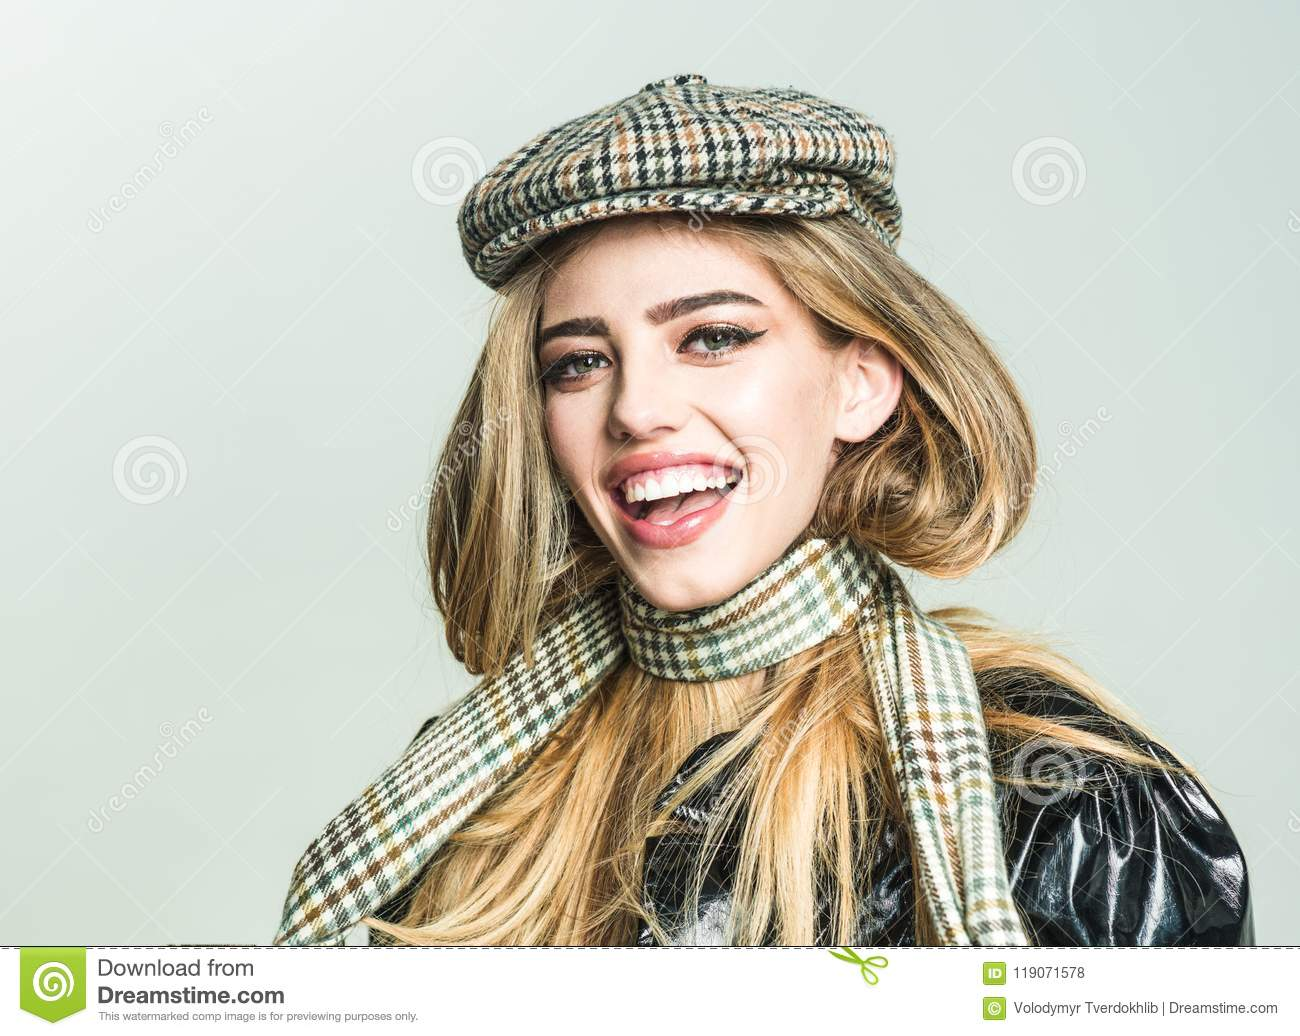 Trendy girl with makeup on sensual face. Autumn fashion for woman in hat and scarf. woman with stylish long hair in